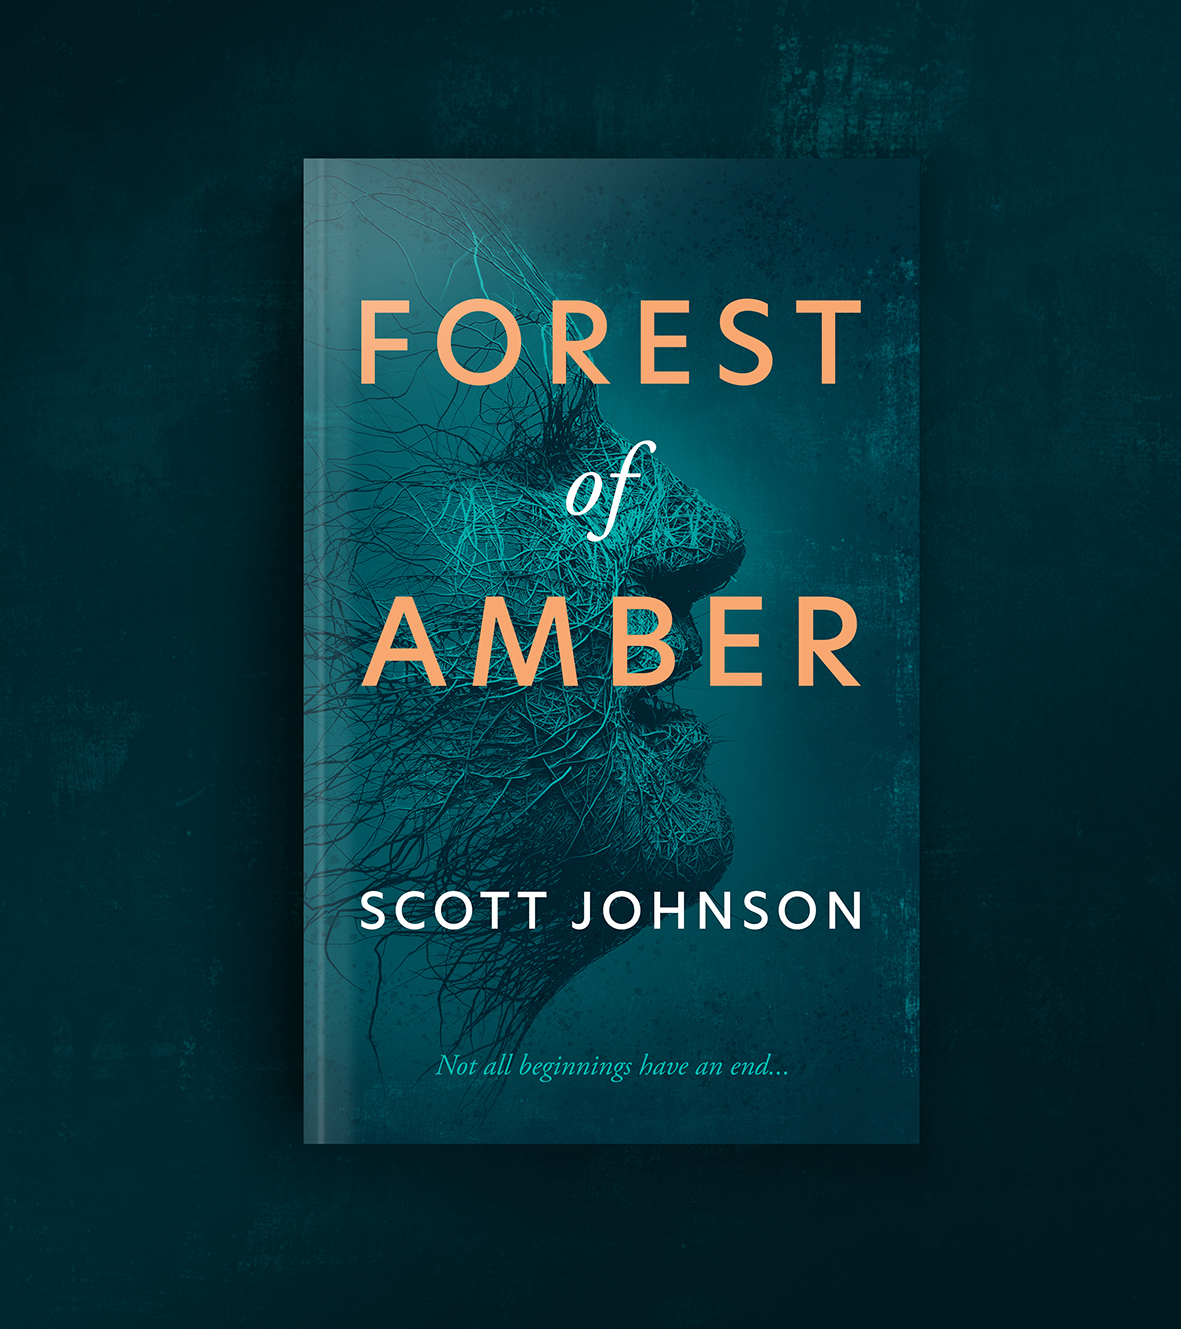 Forest of Amber by Scott Johnson